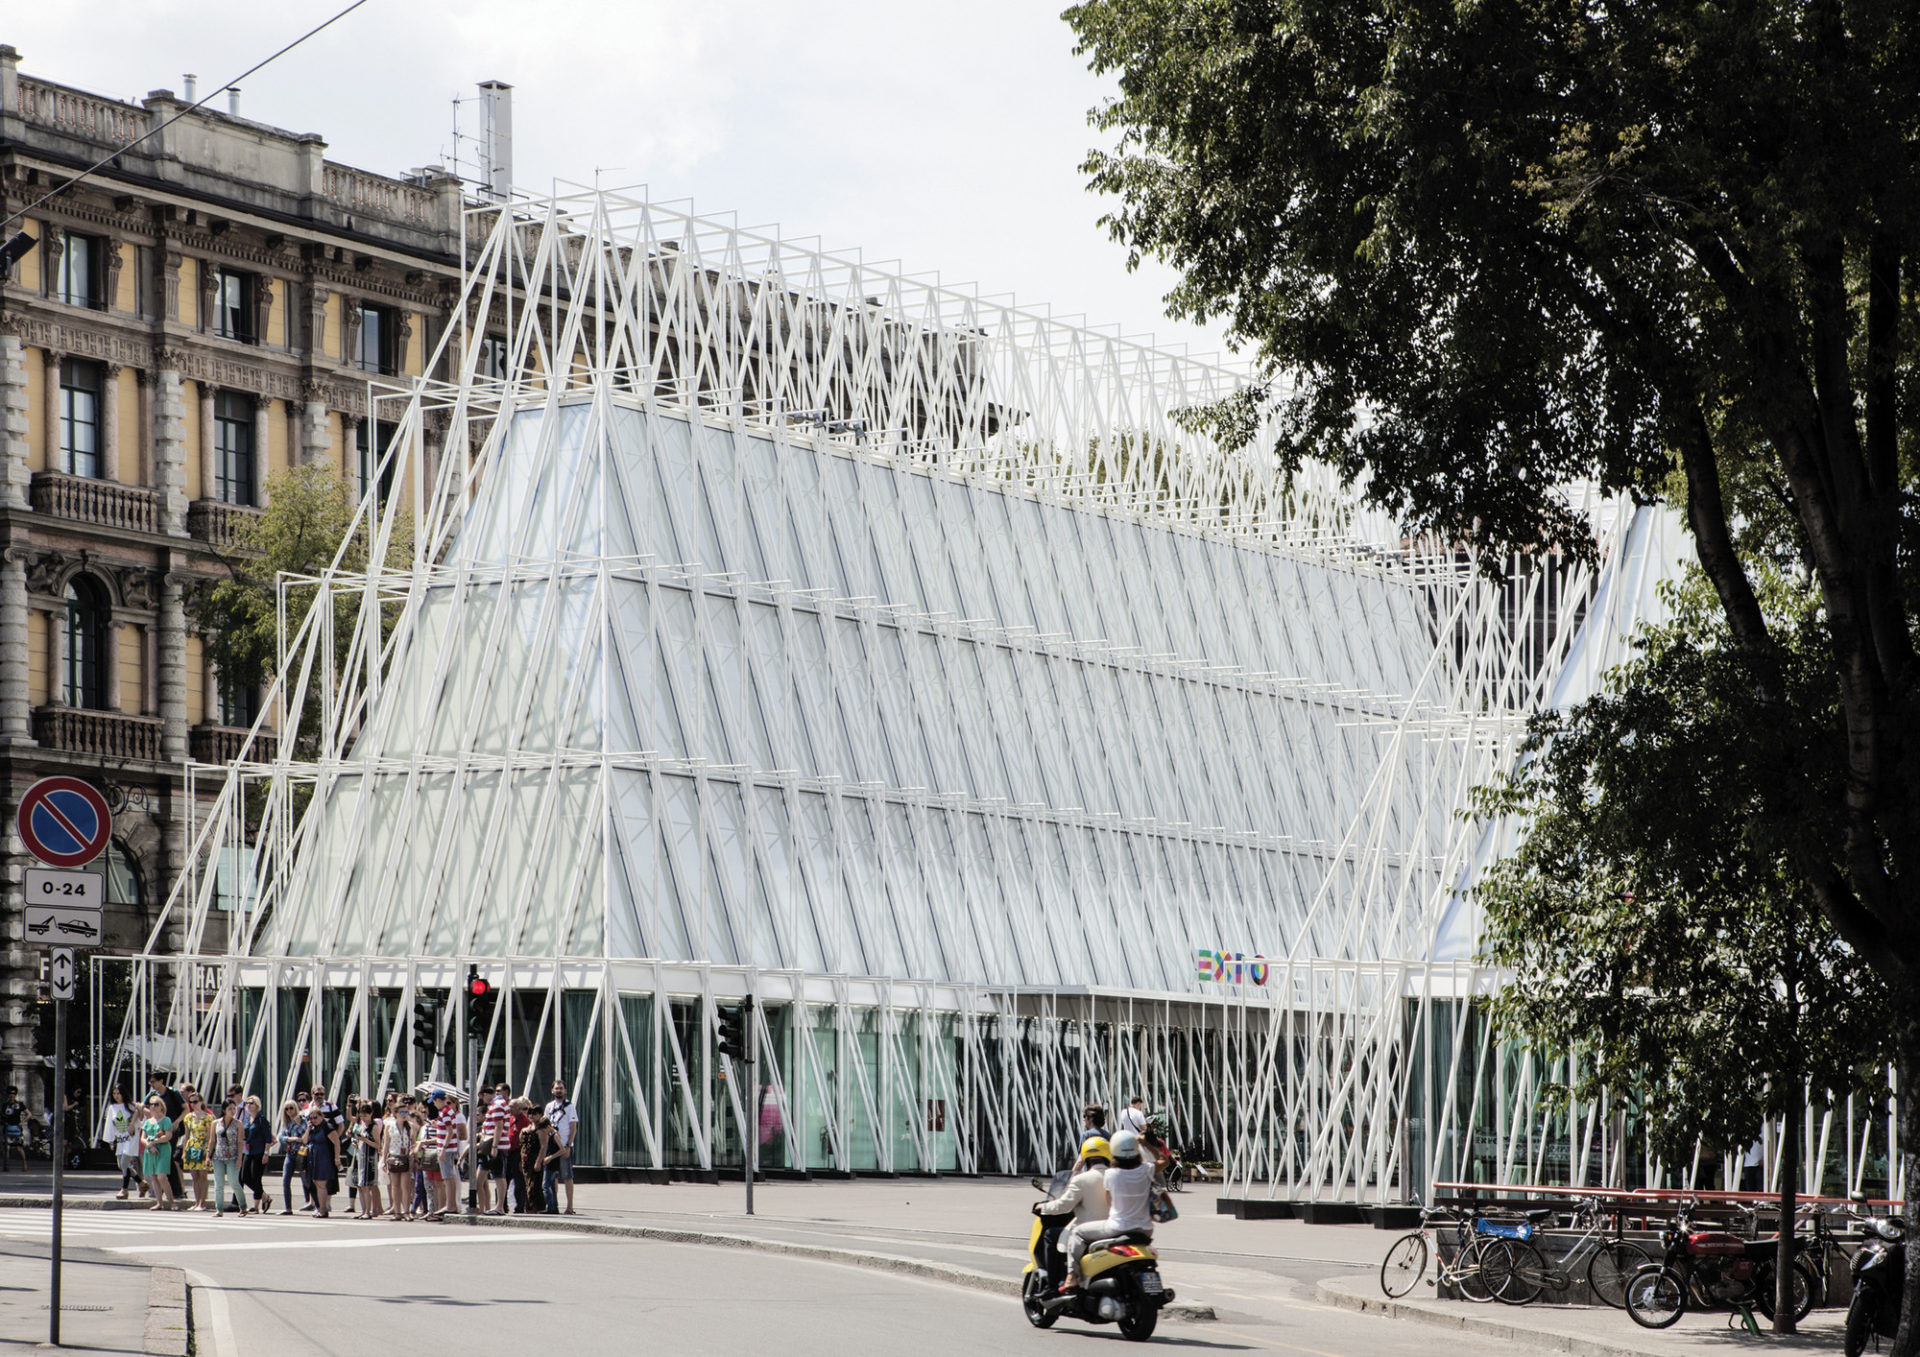 Expo Gate in Milan, Italy by Scandurra Studio (photo: Filippo Romano).